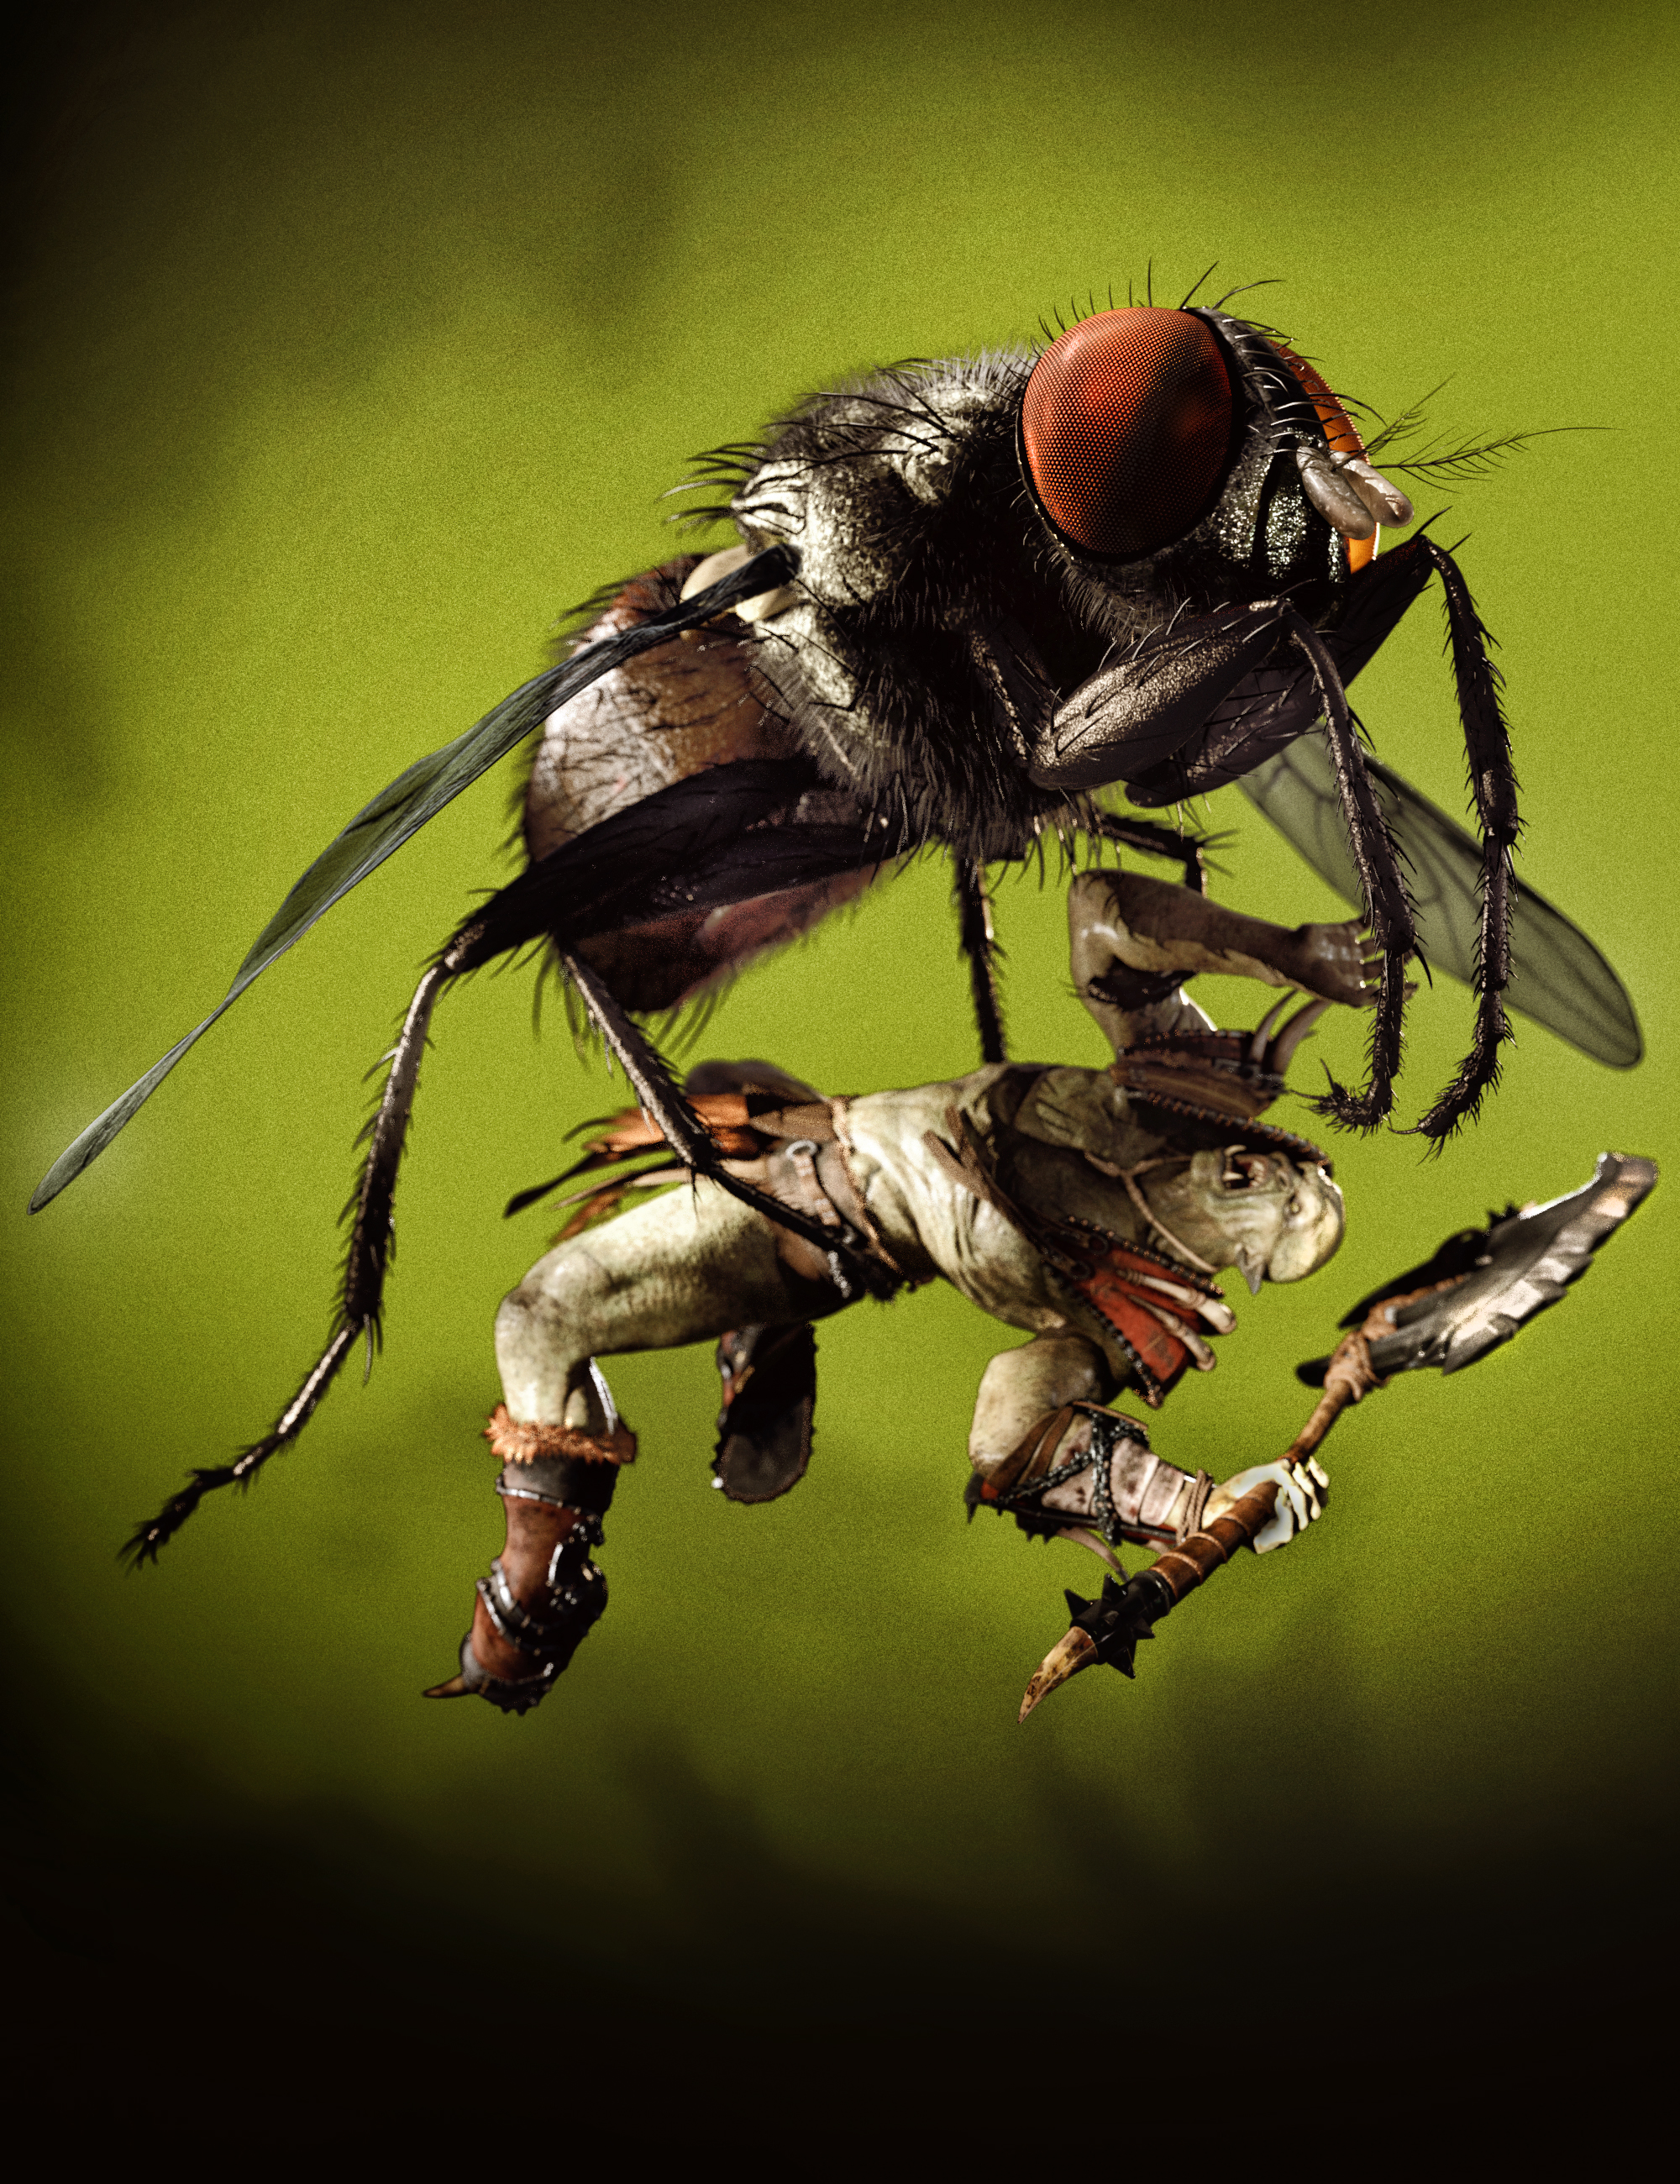 Housefly by AM by: Alessandro_AM, 3D Models by Daz 3D